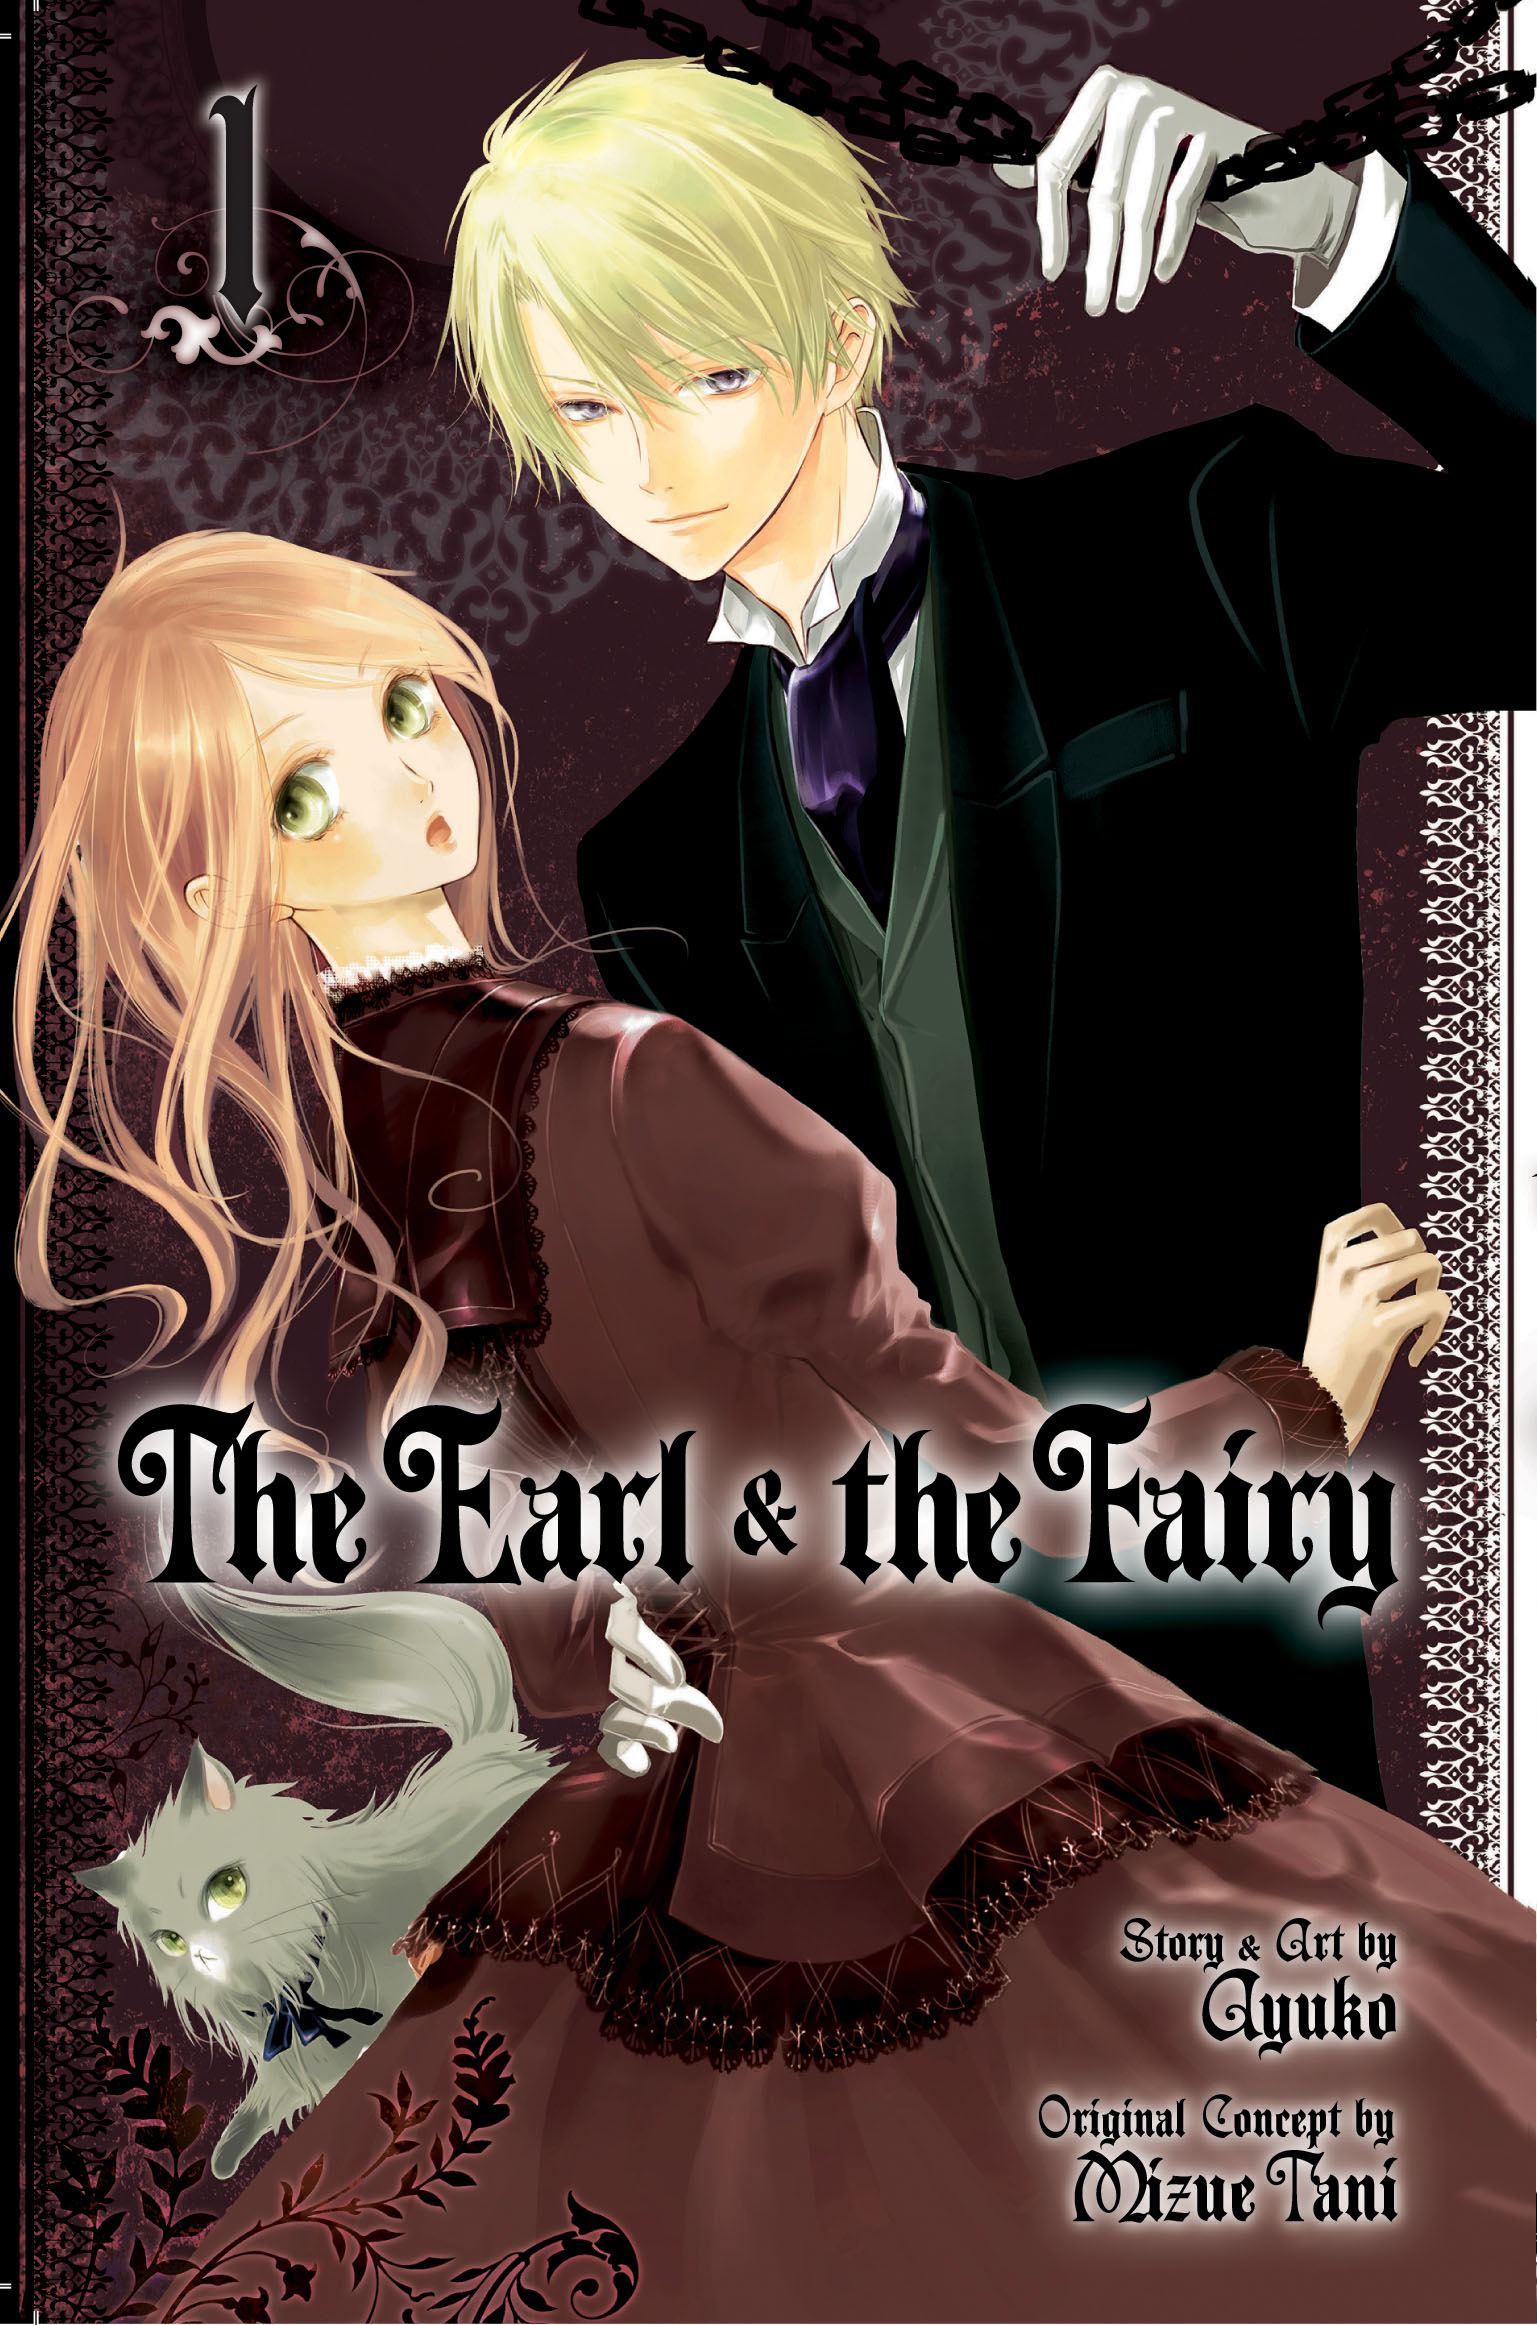 The-earl-and-the-fairy-vol-1-9781421541686_hr